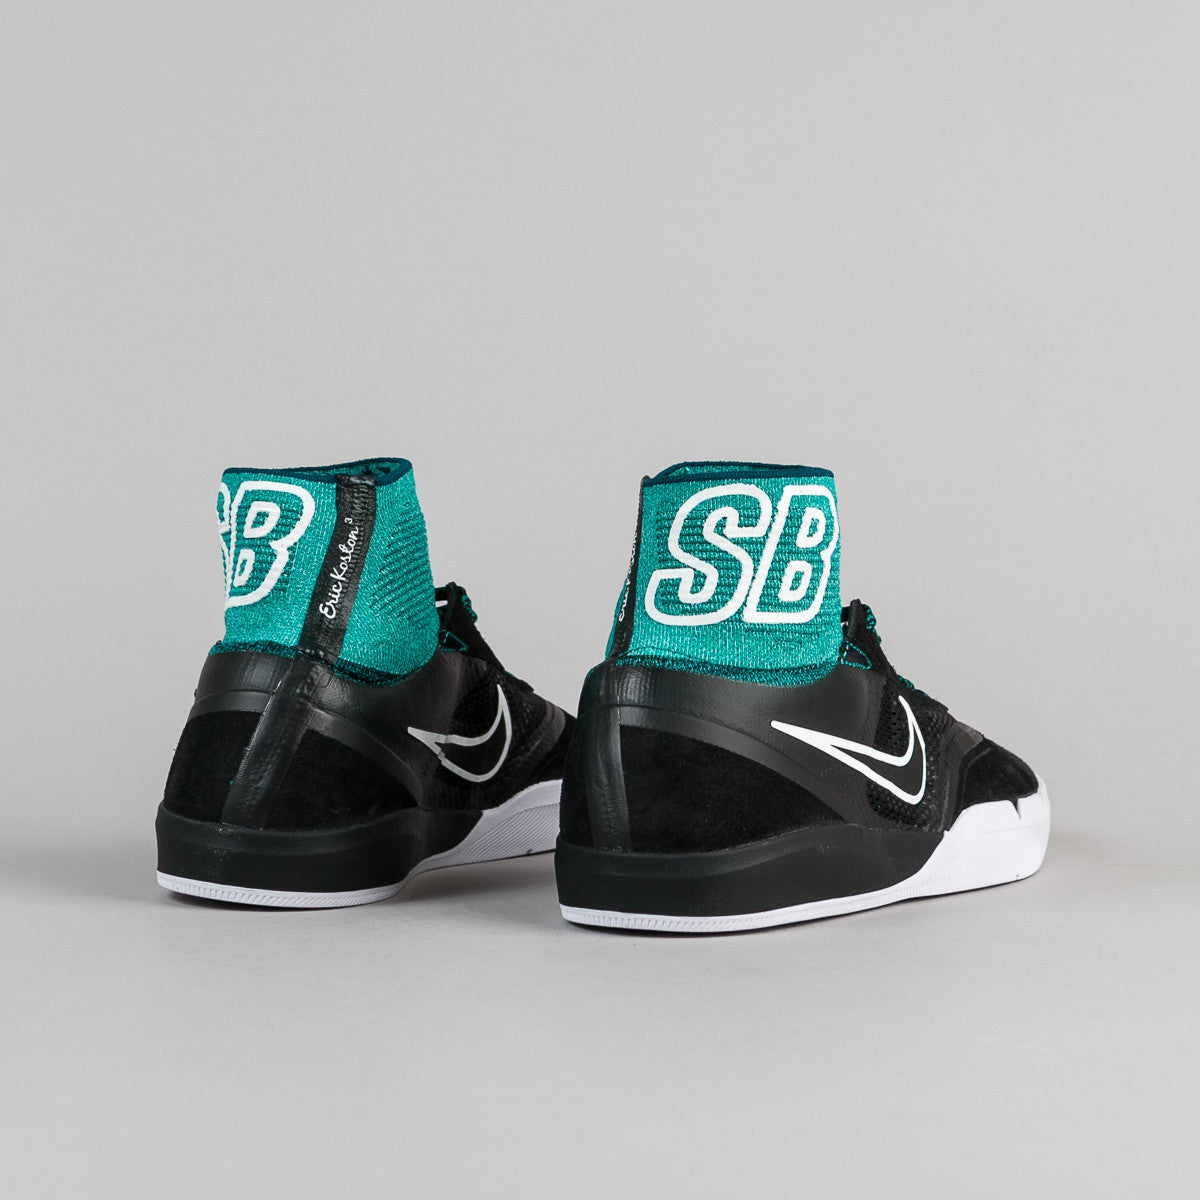 Nike SB Hyperfeel Koston 3 Shoes - Black / Black - Rio Teal - White